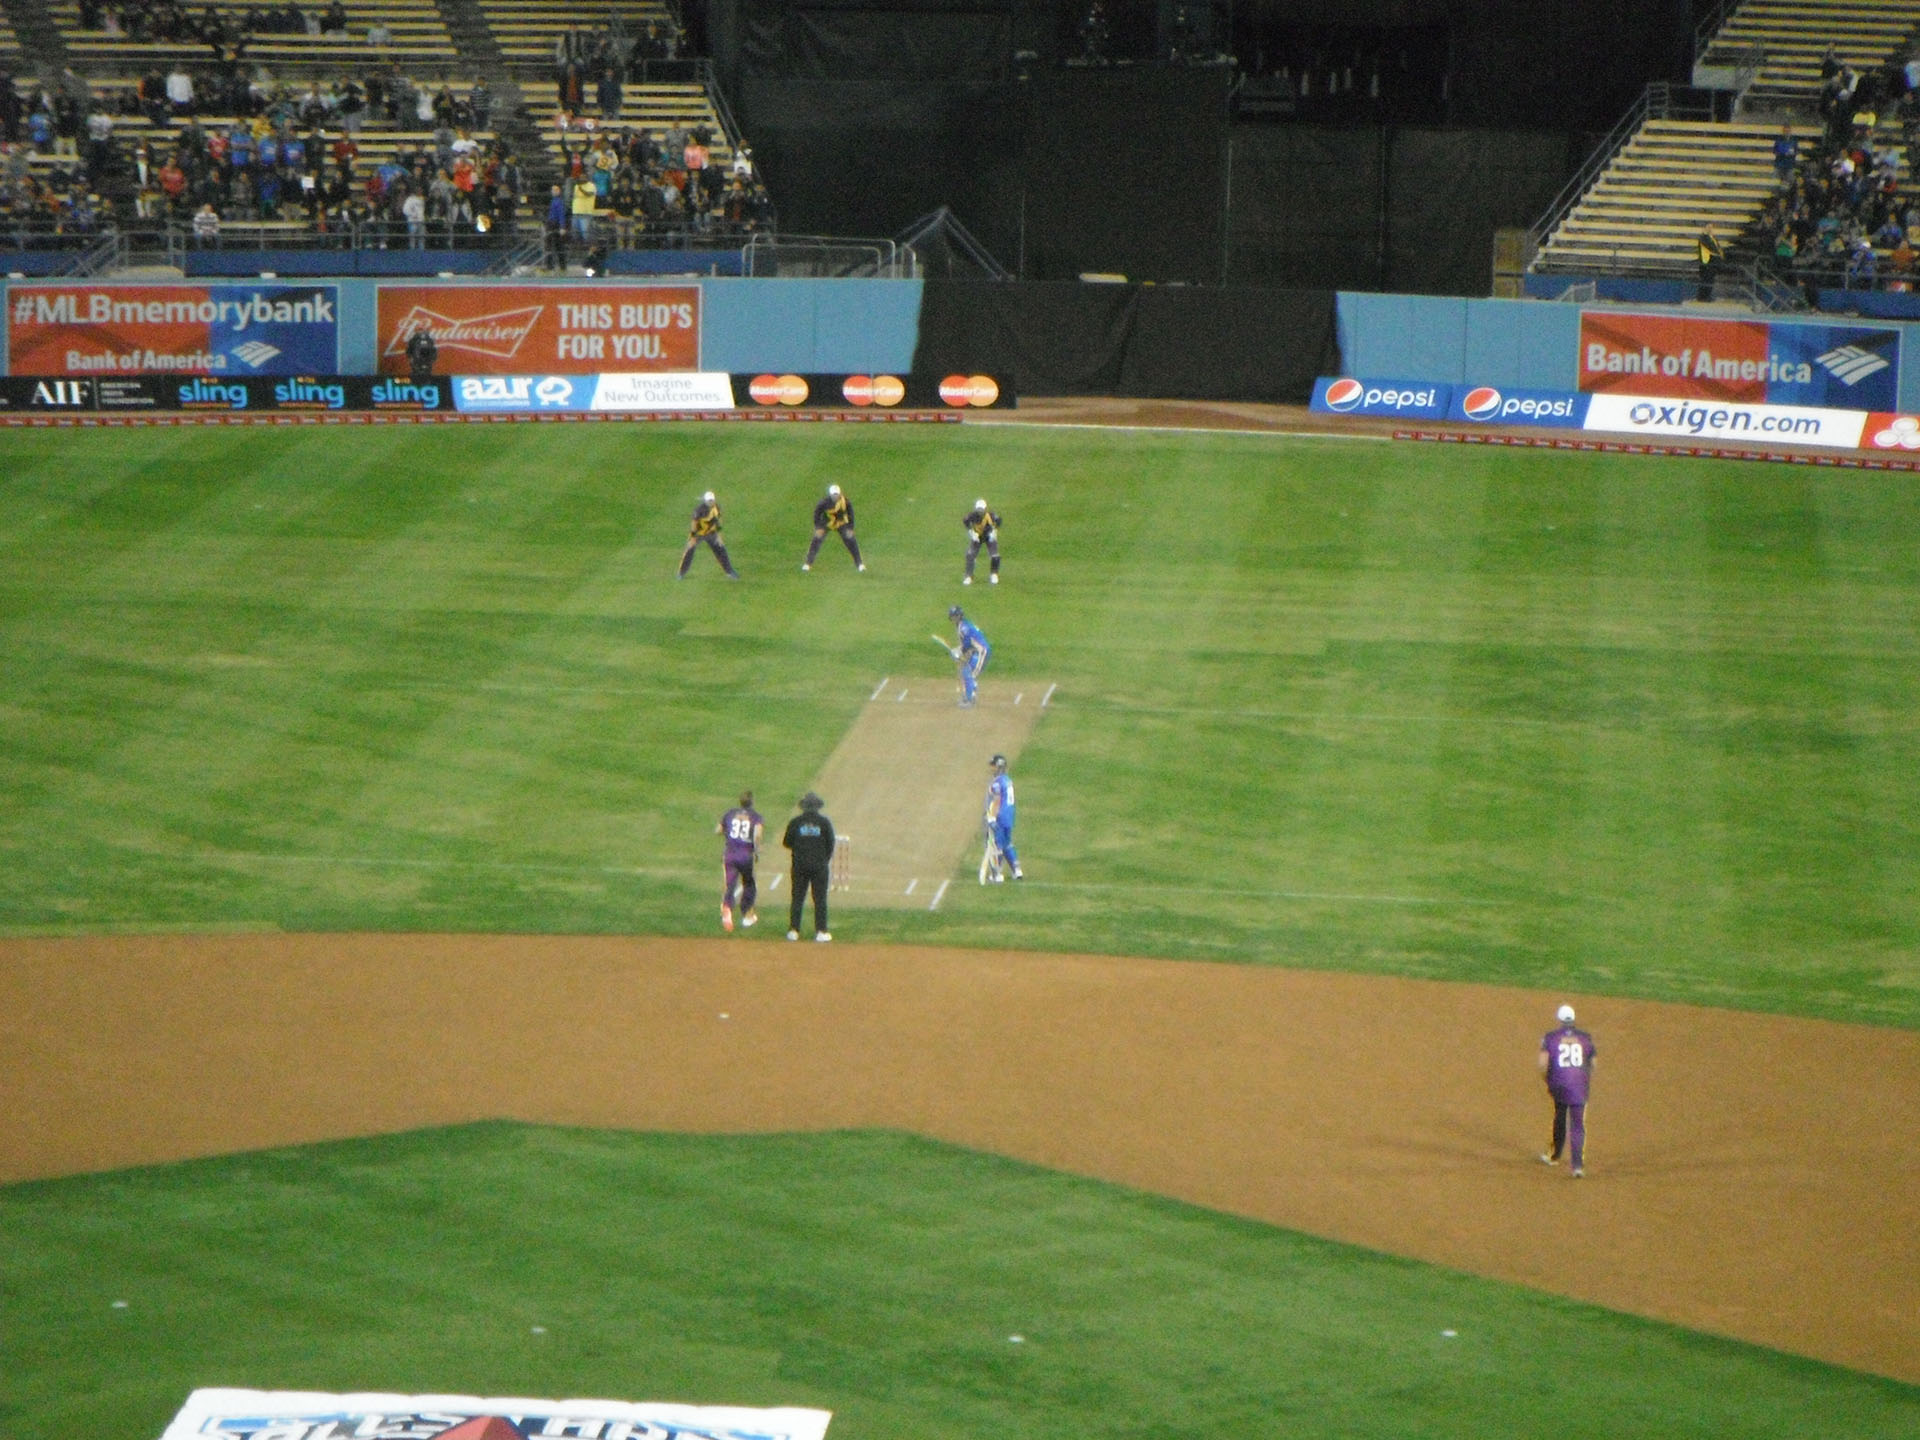 Cricket at Dodger Stadium, November 2015